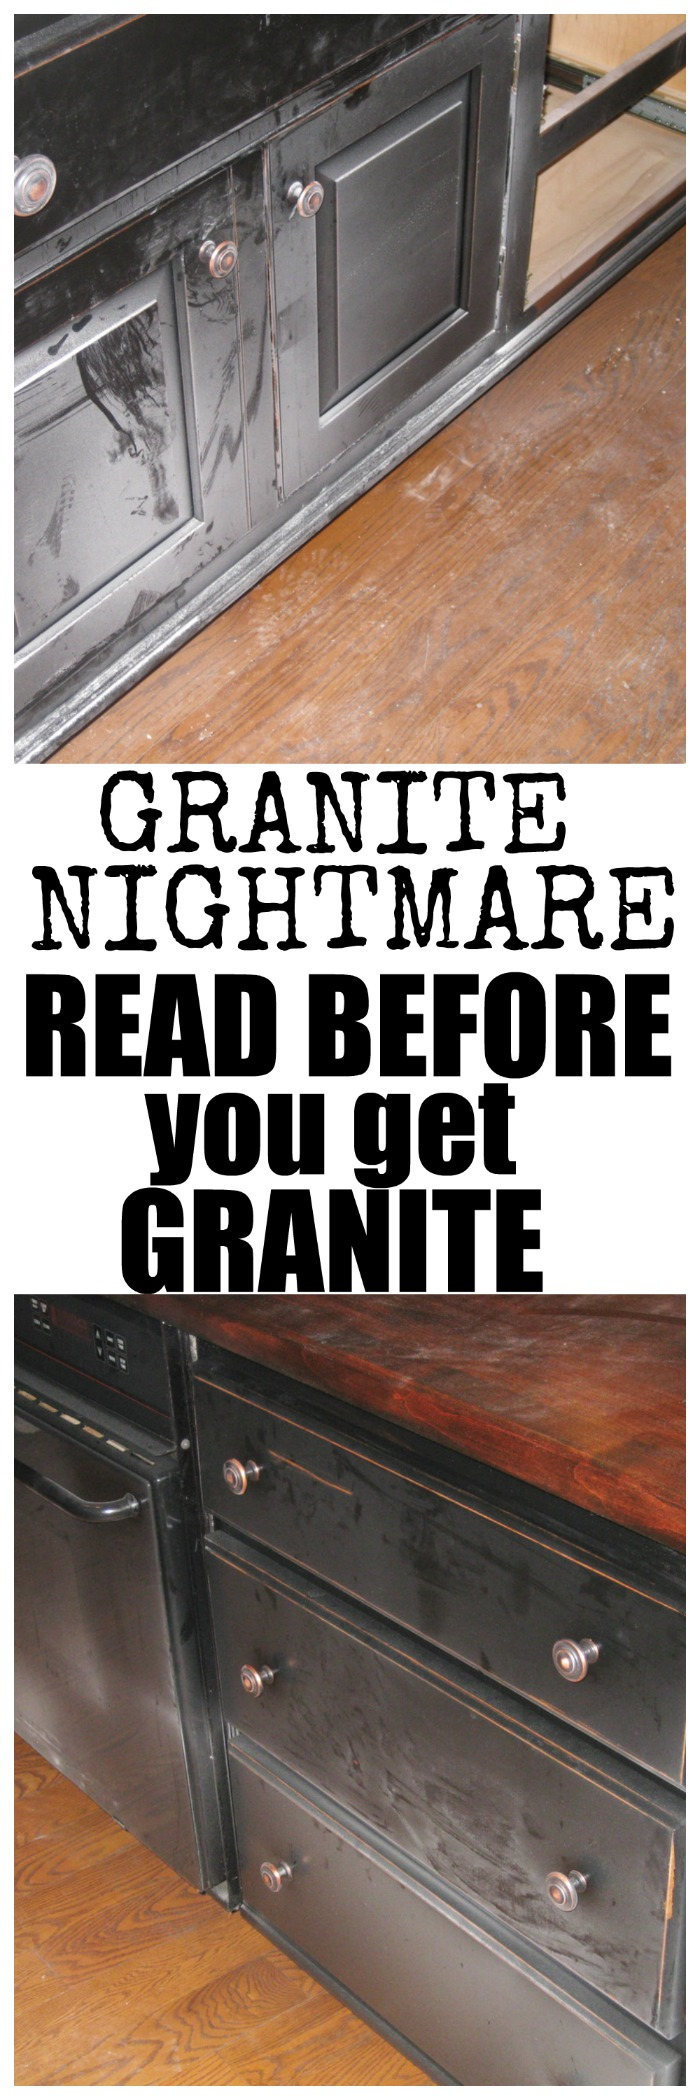 Ordinaire If You Plan On Getting Granite In Your Home You Need To Read What This  Family